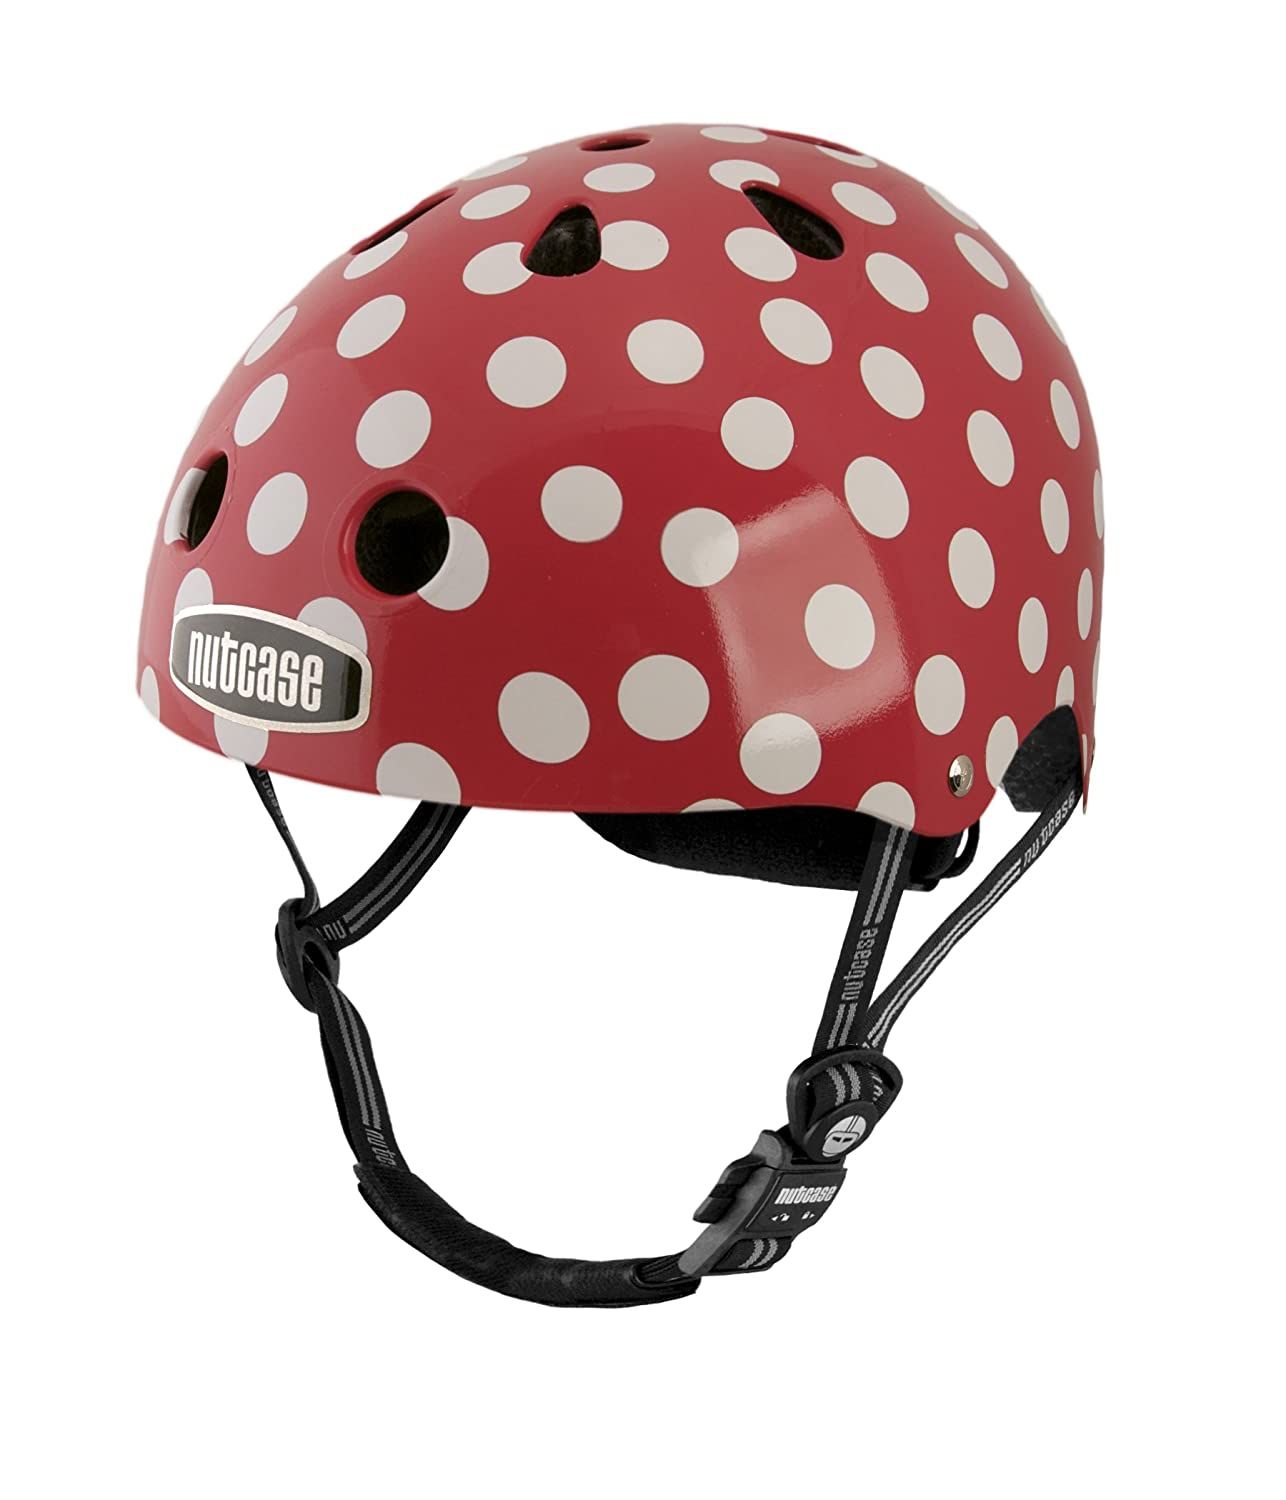 red and white polka dot bicycle helmet